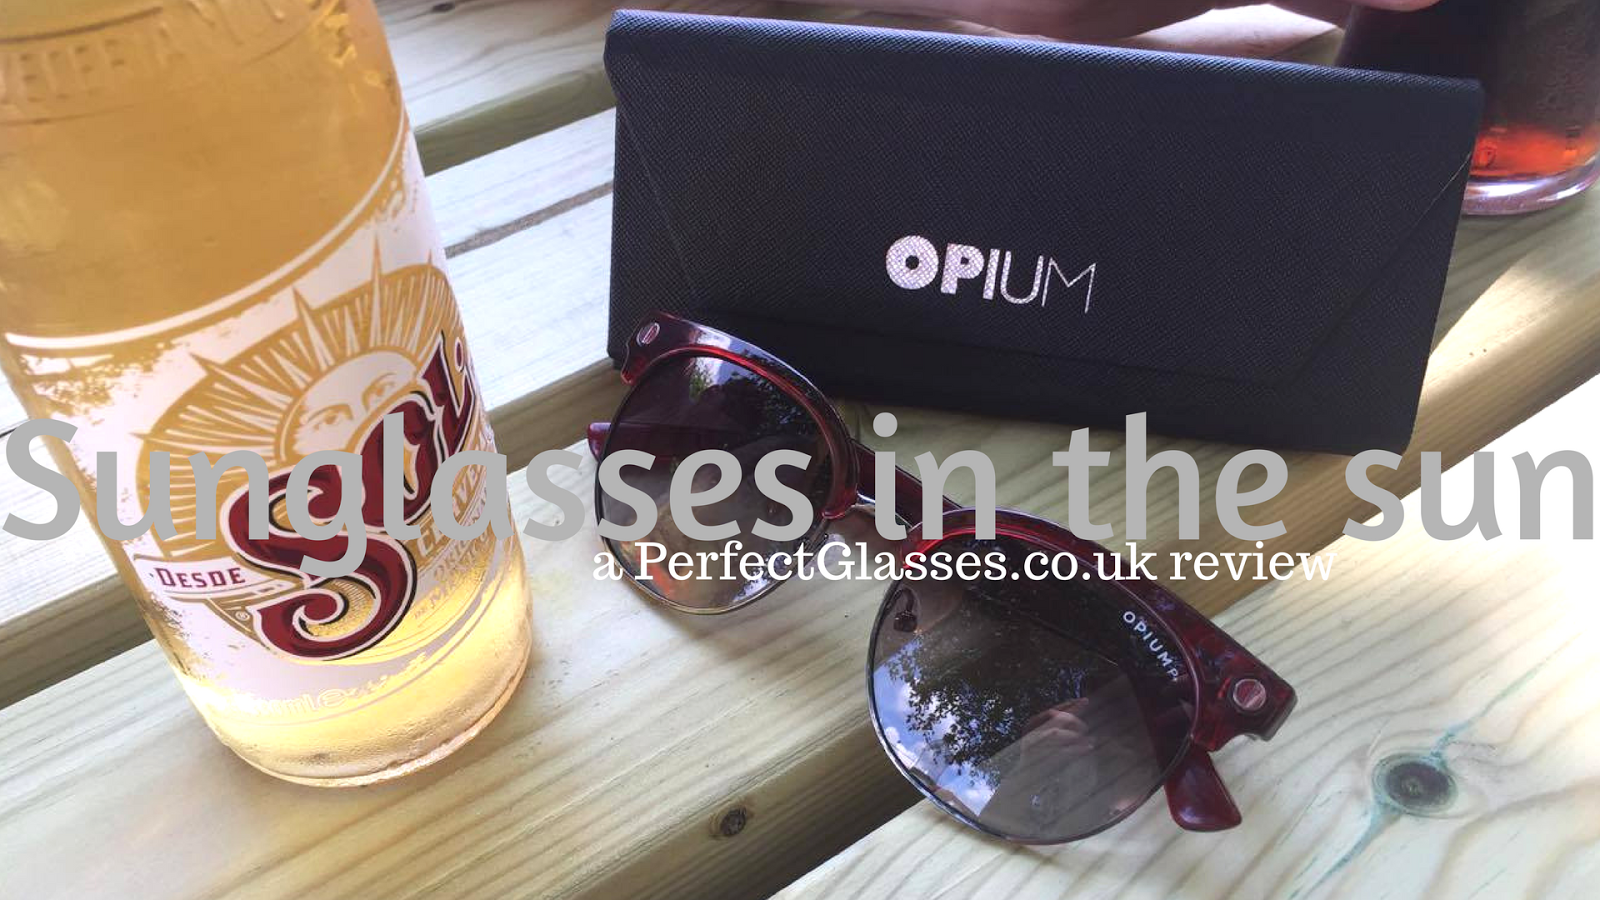 sun, summer, travel, holidays, fashion, perfectglasses, uk, review